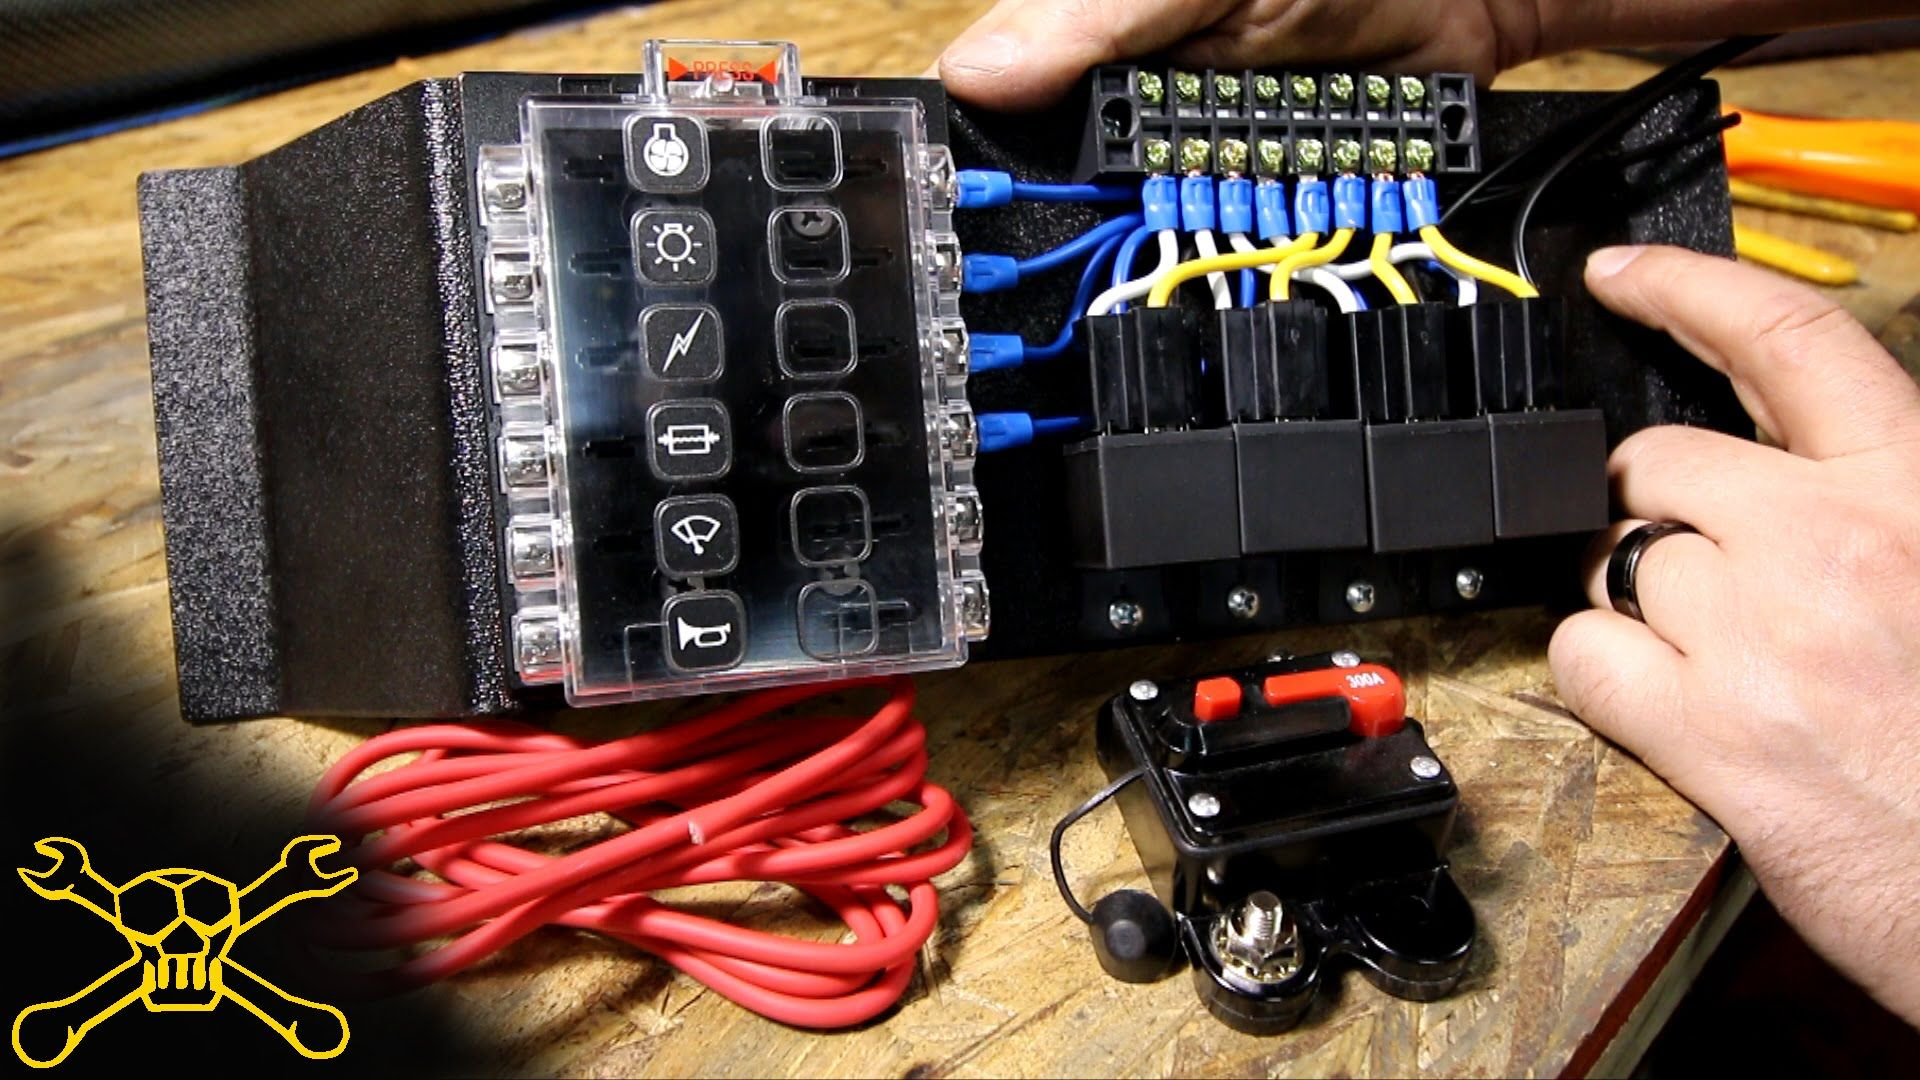 Wiring Fuse Box Automotive : How to make a power relay fuse block automotive wiring